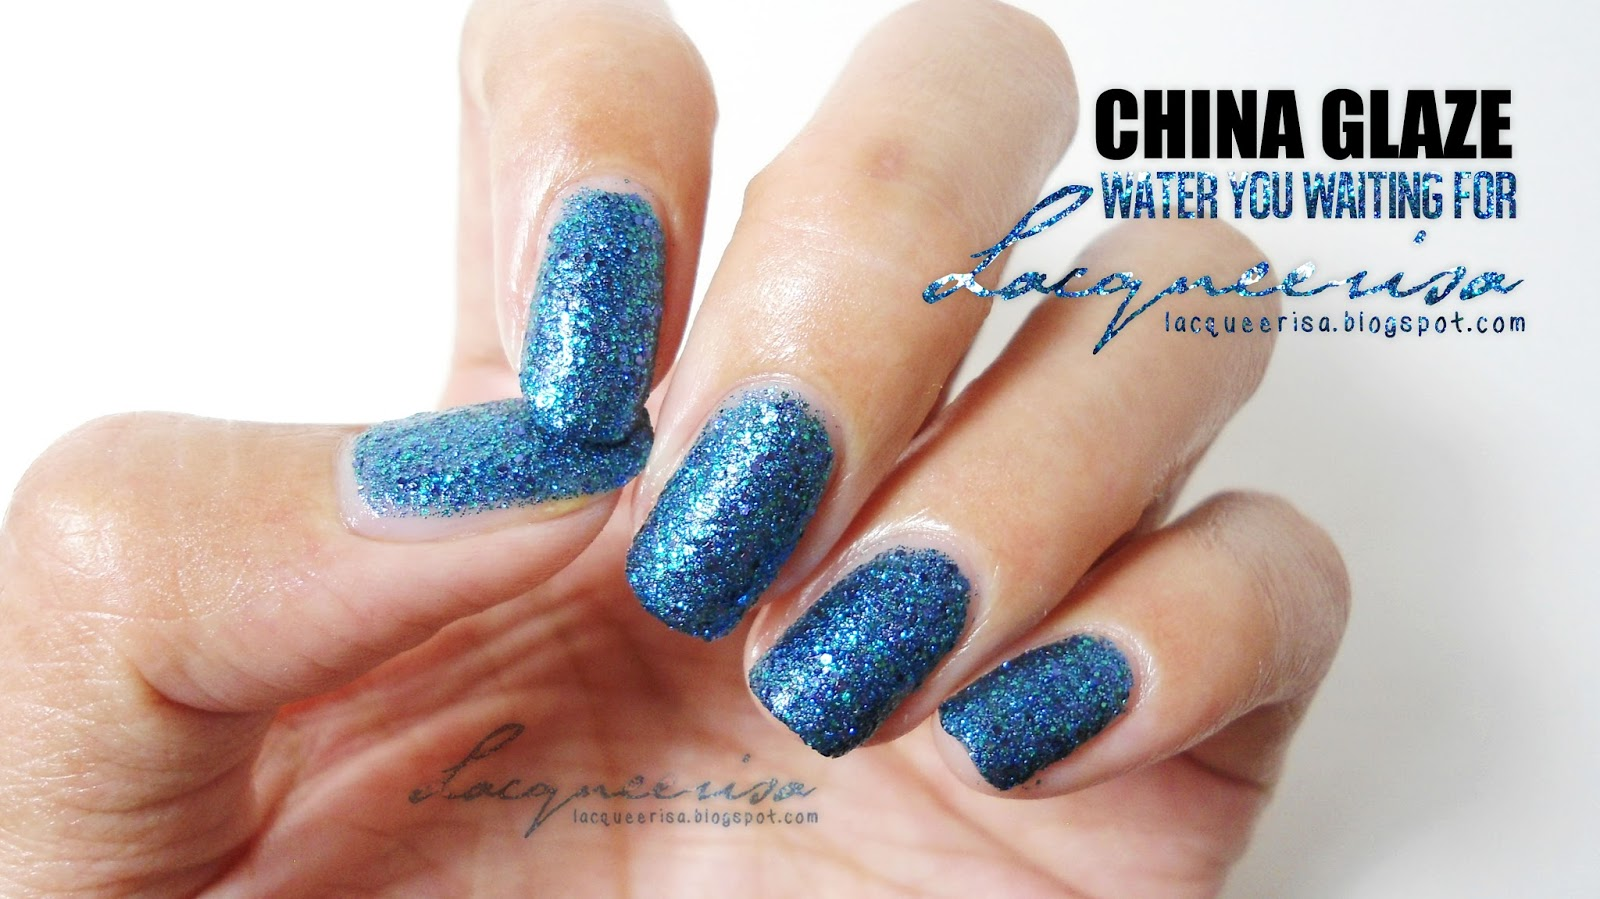 Lacqueerisa: China Glaze Water You Waiting For